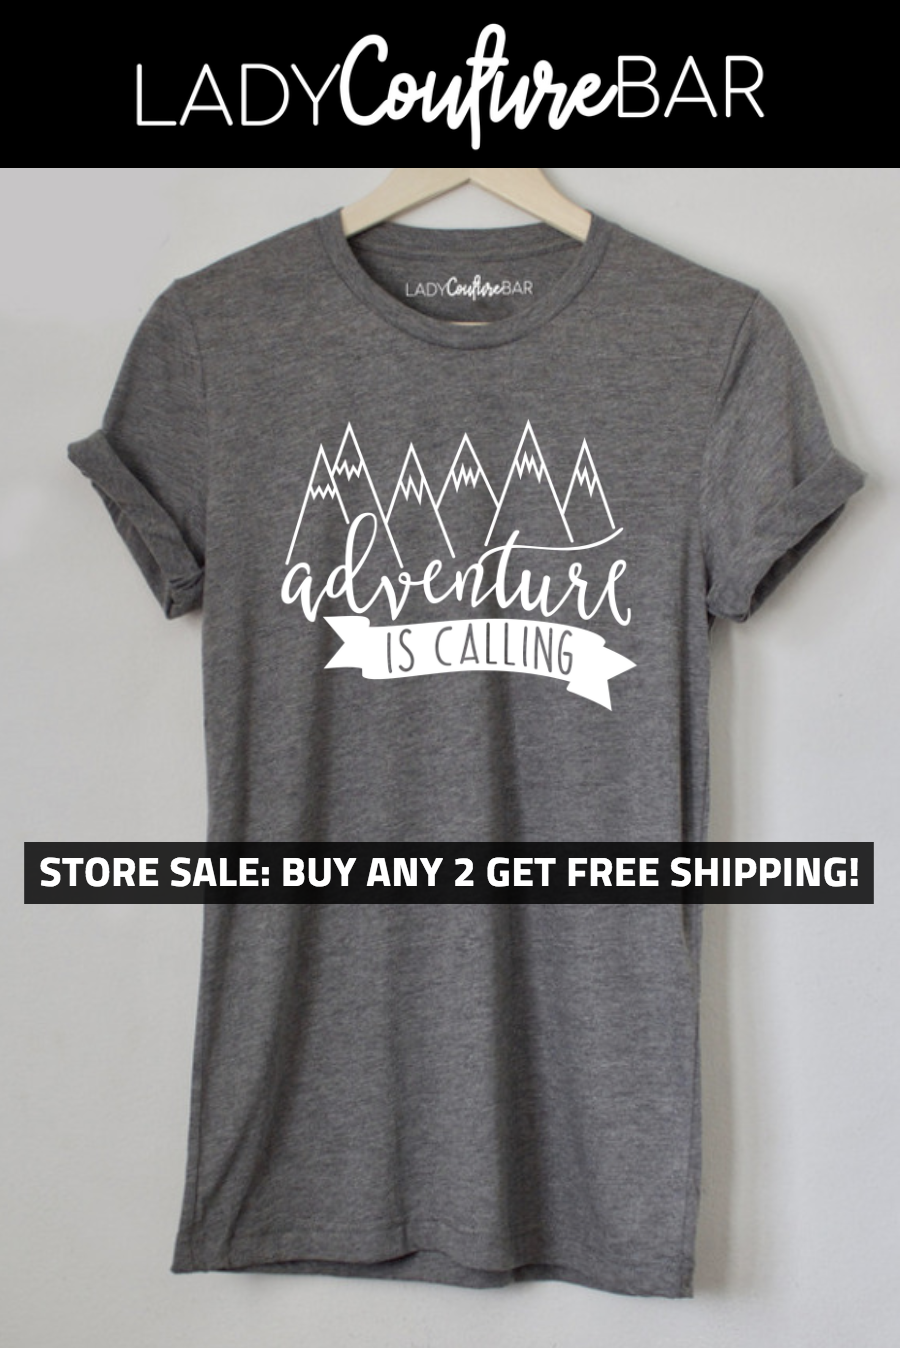 696a1759 Women Shirts with Sayings, Adventure shirts, Mountains are calling, Buy 2  Get Free Shipping #adventure #glamping #camping